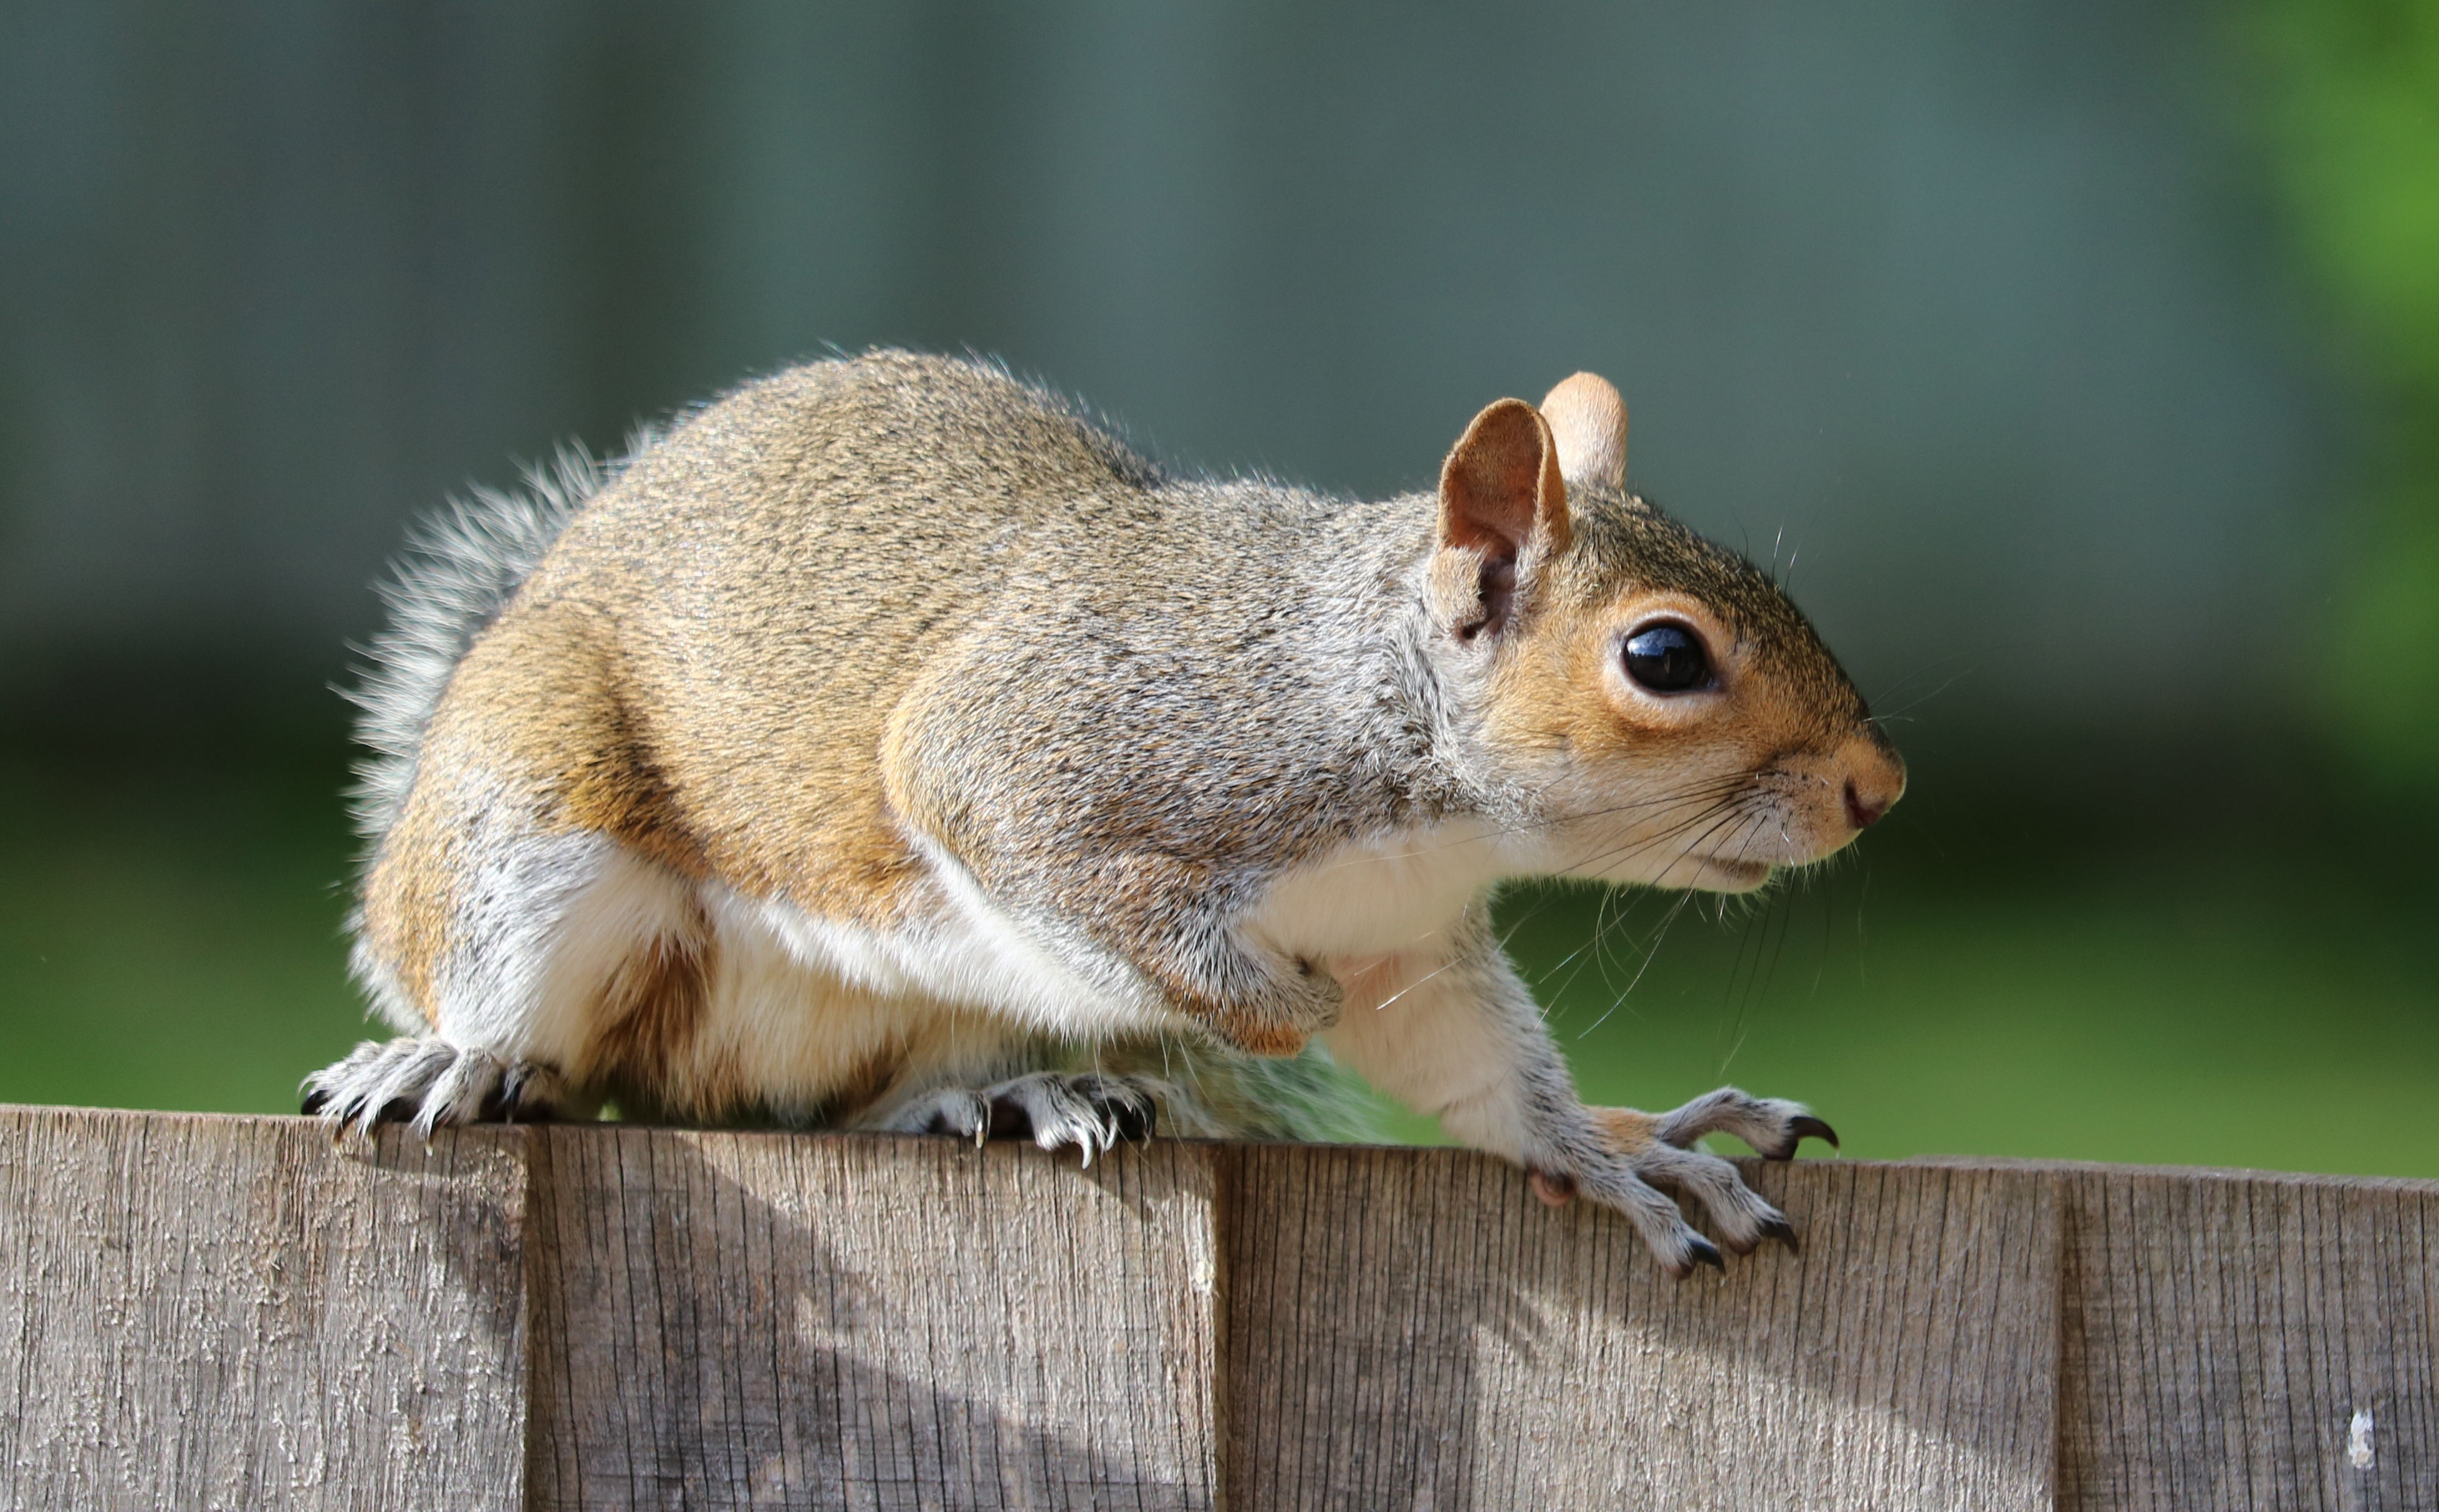 98459 Screensavers and Wallpapers Squirrel for phone. Download Animals, Squirrel, Fence, Fright, Animal pictures for free